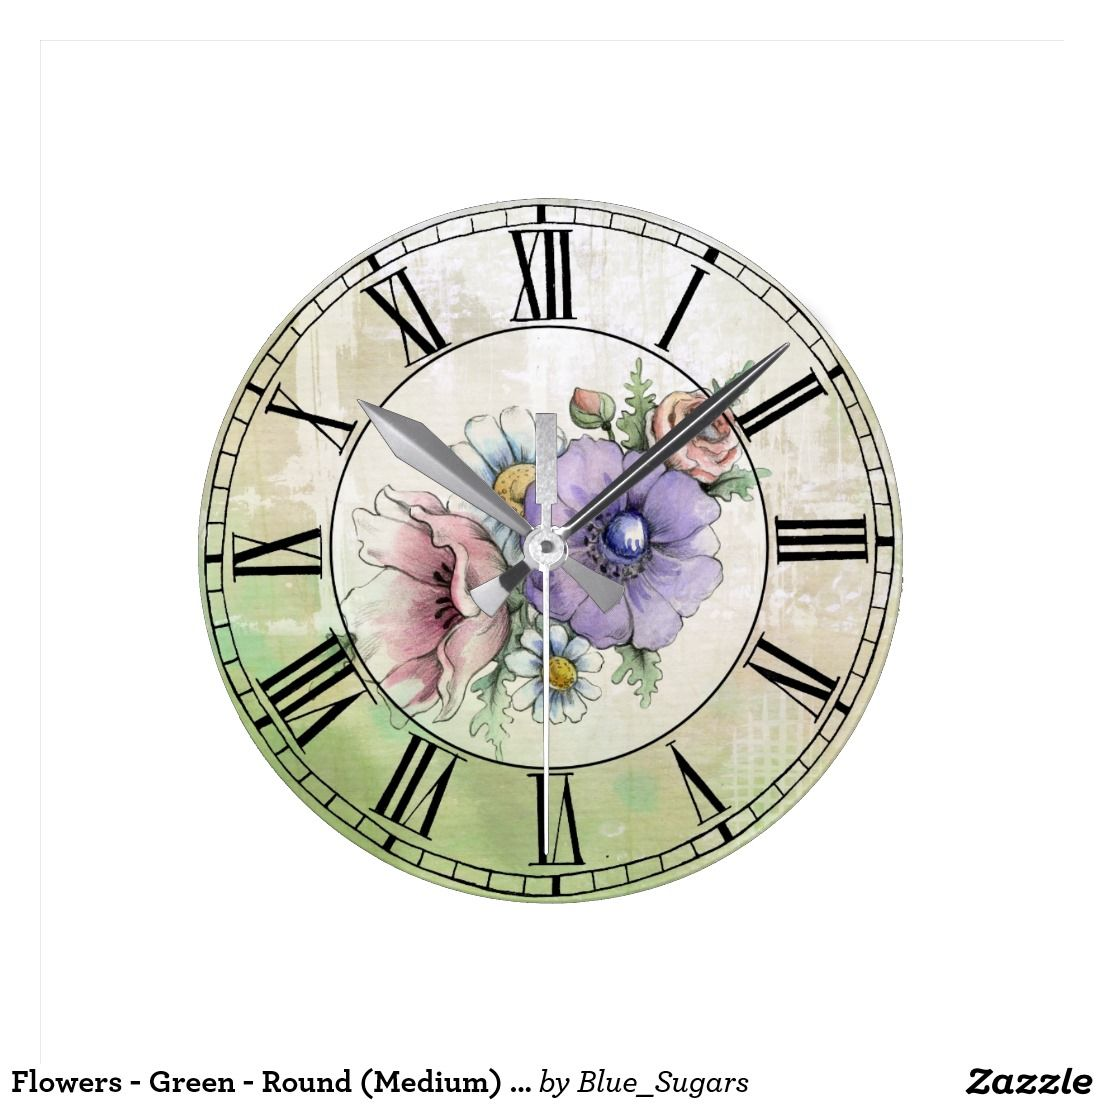 Flowers - Green - Round (Medium) Wall Clock - cant decide if this would go in a kitchen or living room